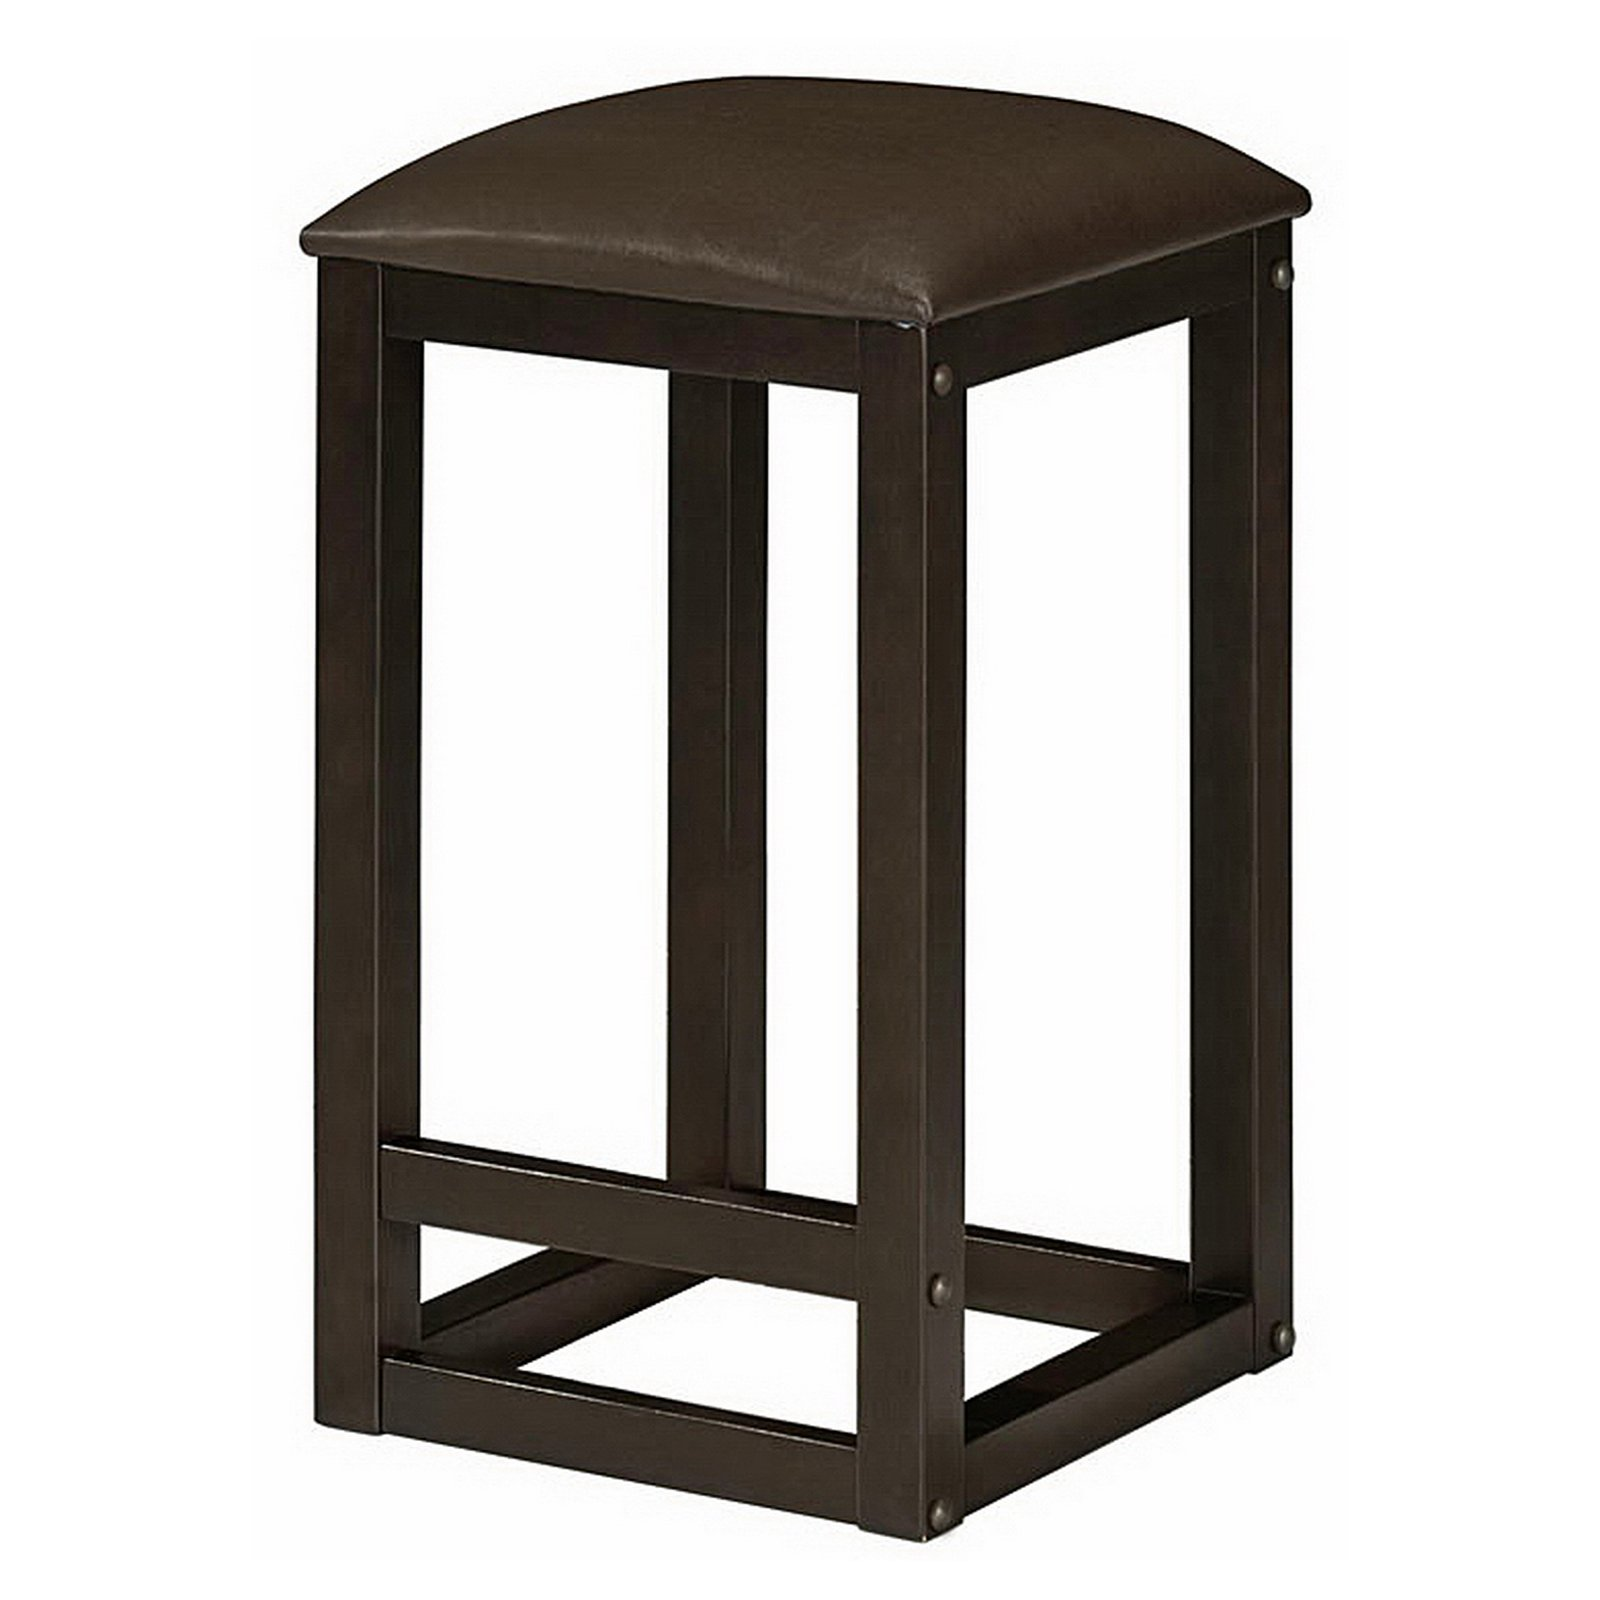 Leeds Brown Wood Collapsible Pub Table Set - Walmart.com